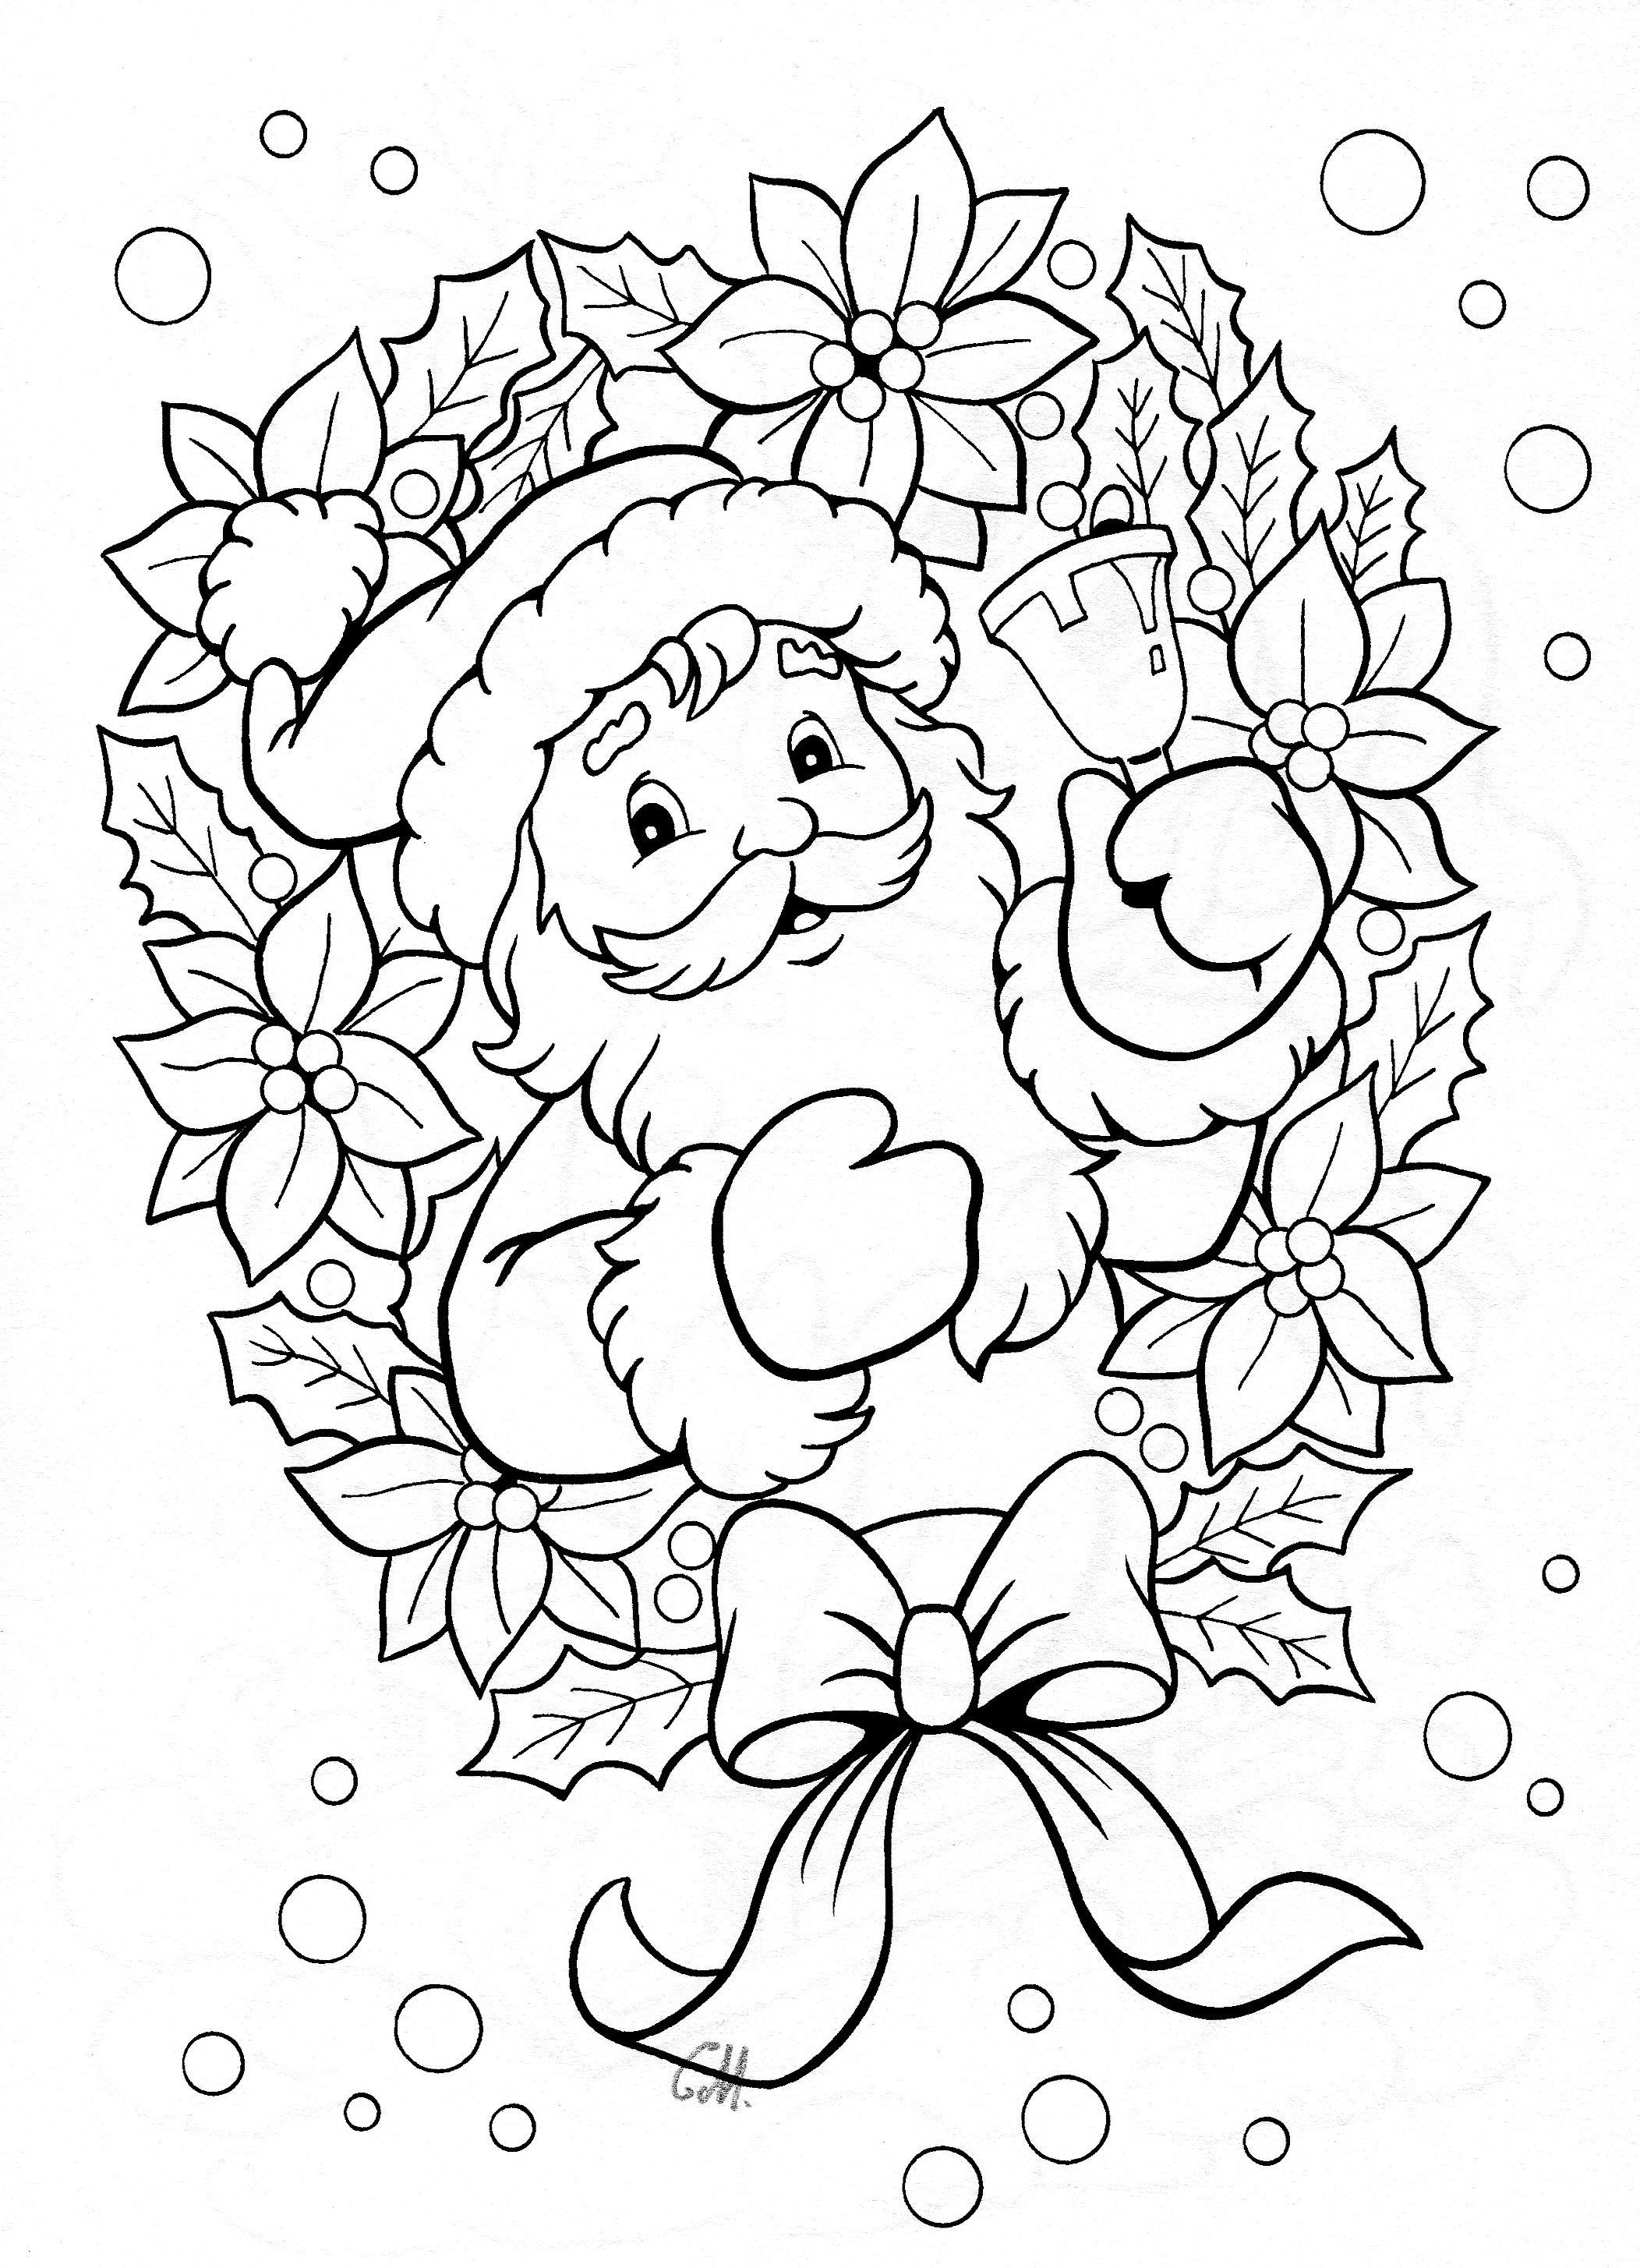 Santa poinsettia reef | Coloring pages | Pinterest | Dibujos para ...